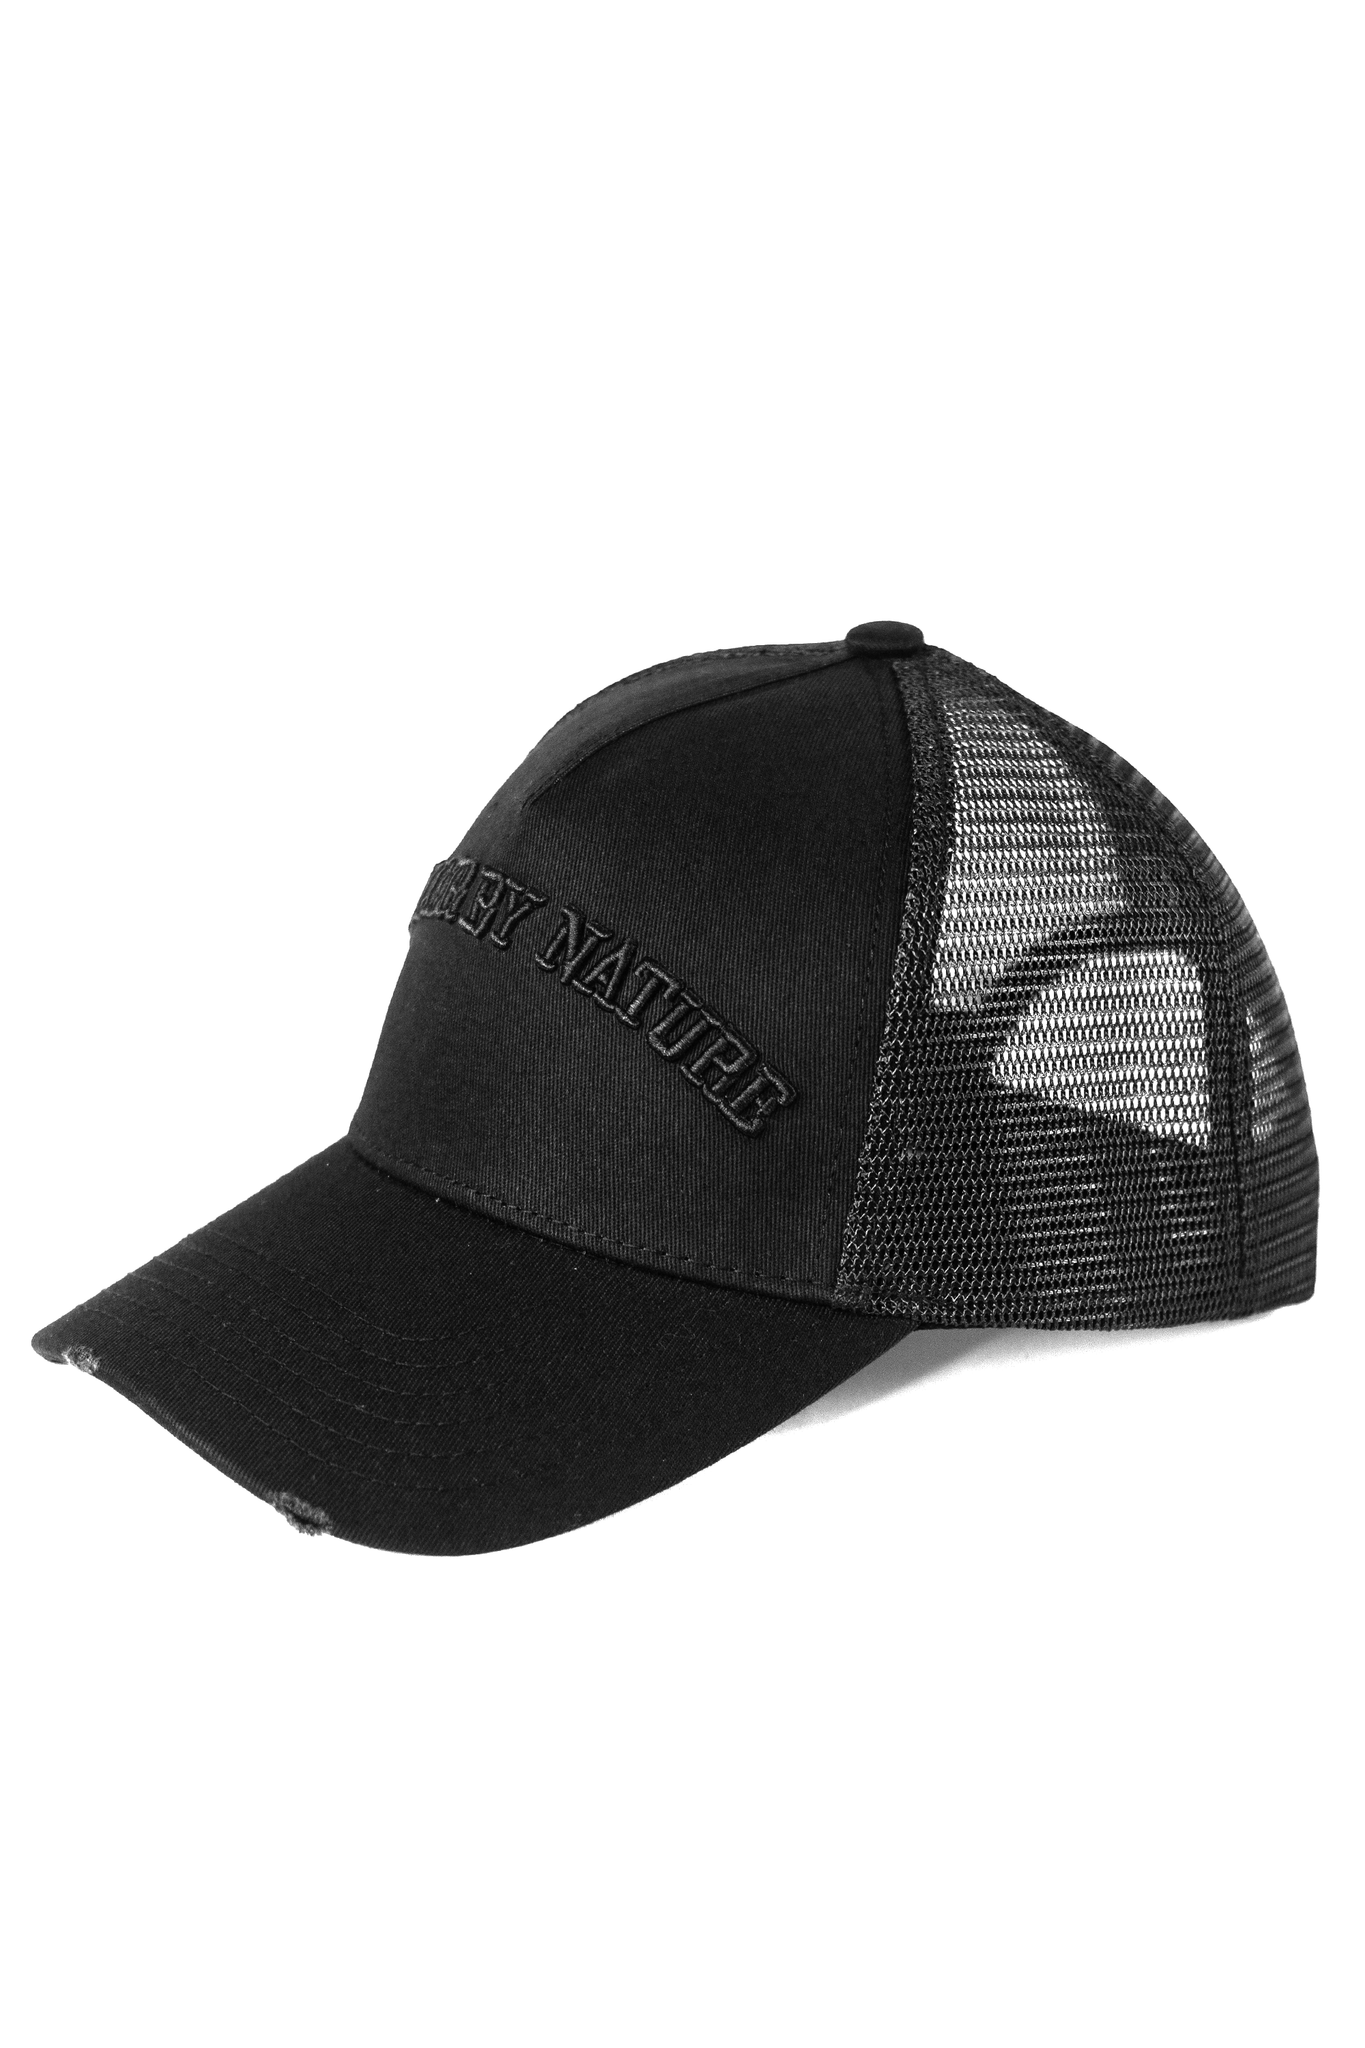 Hustler By Nature Trucker Cap